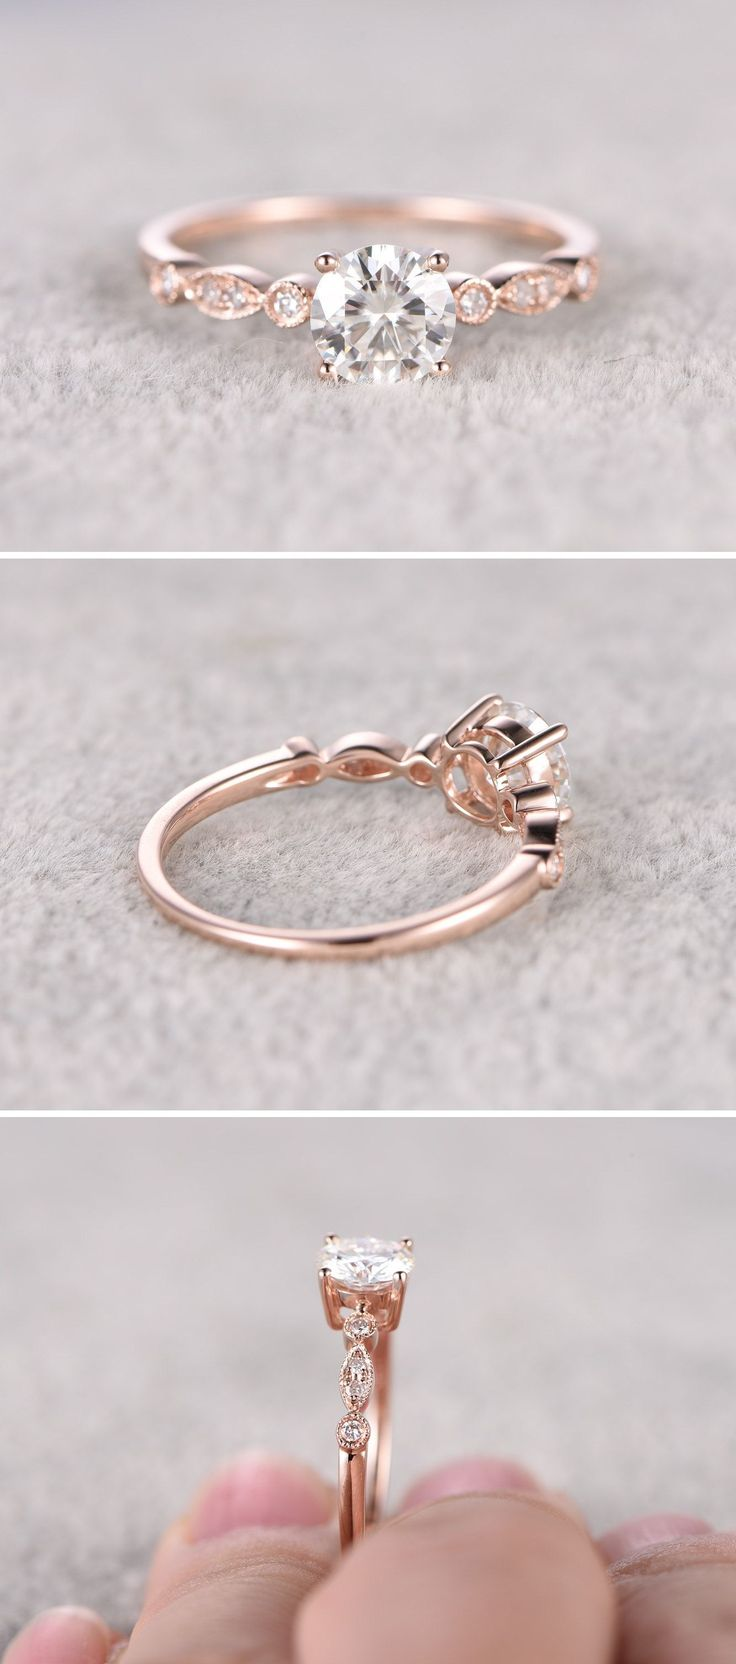 Moissanite in Rose Gold Engagement Ring - Gardening Aisle  wedding rings pictures, simple, vintage, sets, wedding rings sets, kay jewelers wedding rings, wedding rings for men, zales wedding rings, cheap wedding rings, womens wedding ring sets, unique wedding bands